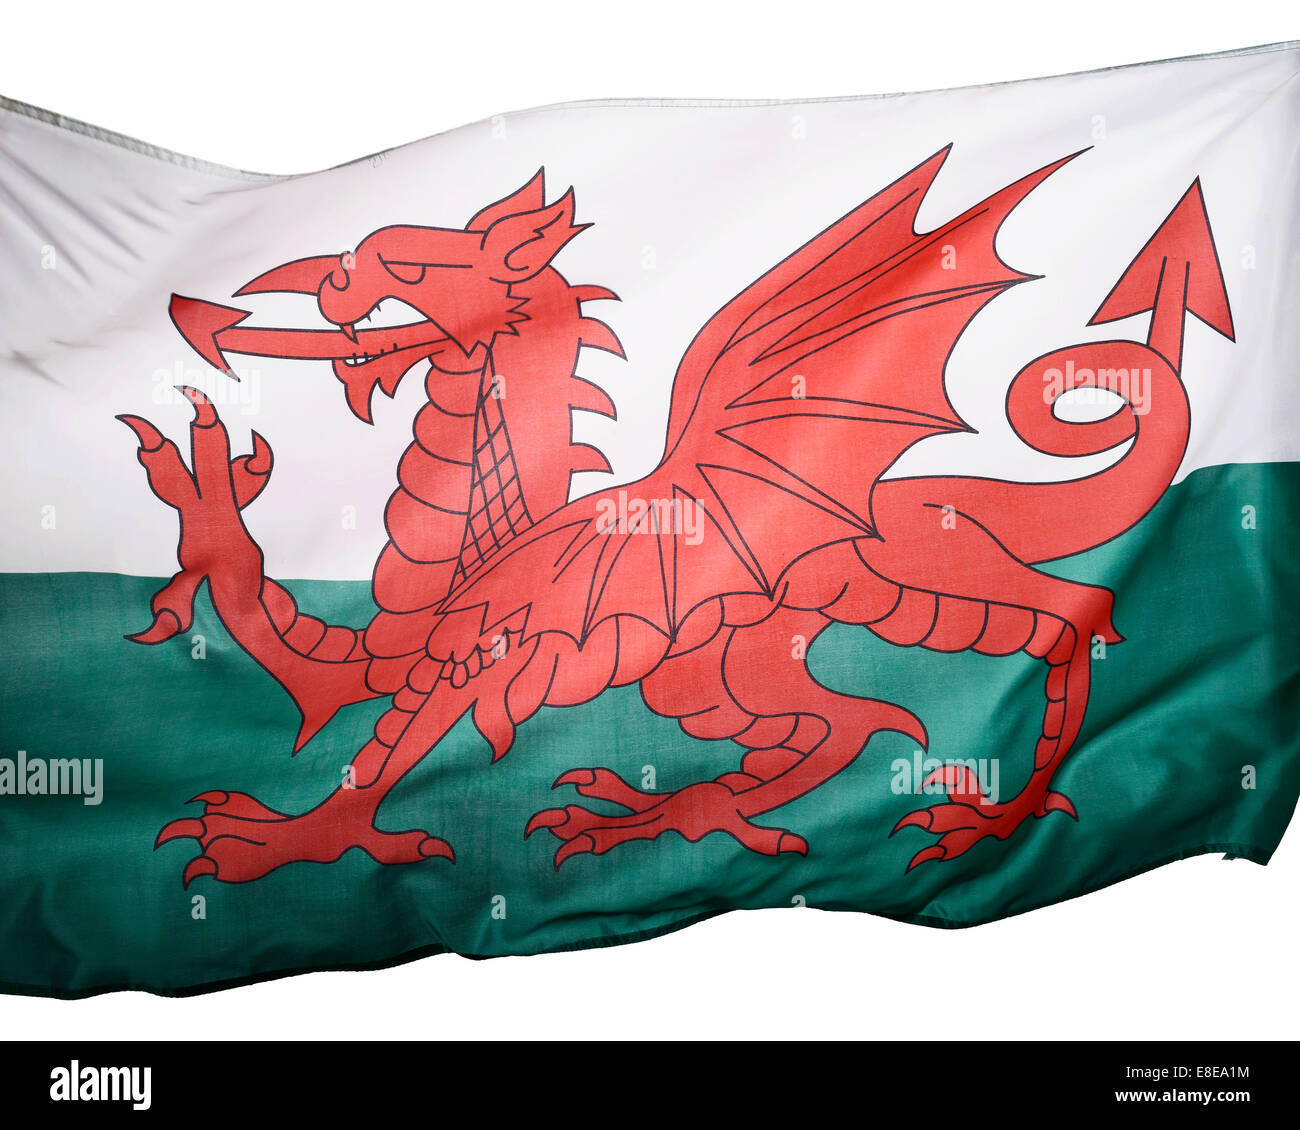 Close up detail of a Welsh flag - Stock Image